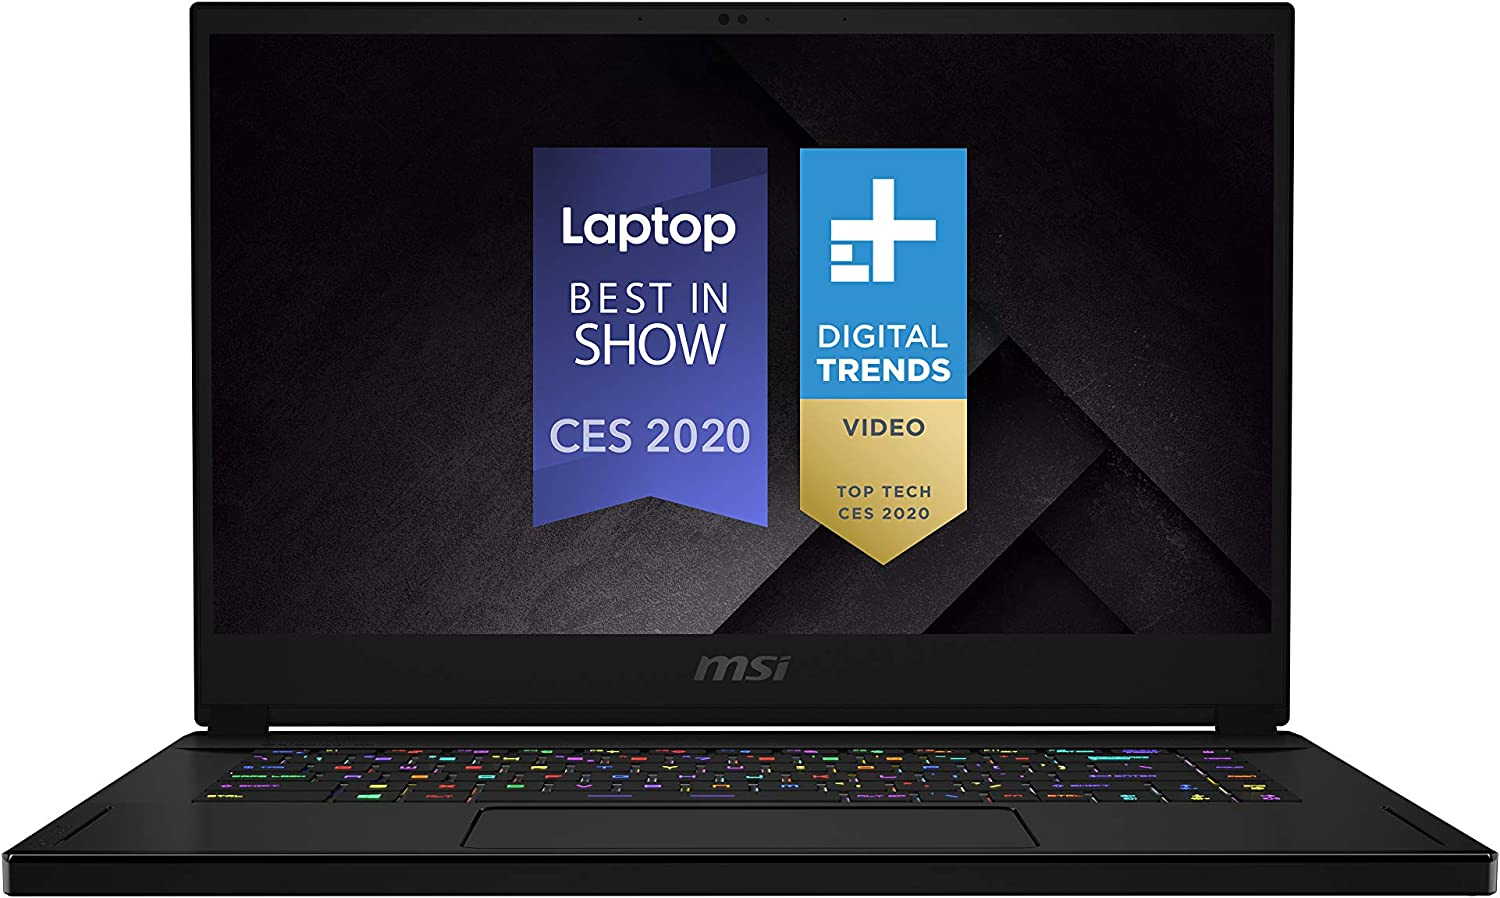 "MSI GS66 Stealth 10SFS-440 15.6"" 300Hz 3ms Ultra Thin and Light Gaming Laptop Intel Core i7-10875H RTX2070 Super 32GB 512GB NVMe SSD Win10PRO VR Ready"